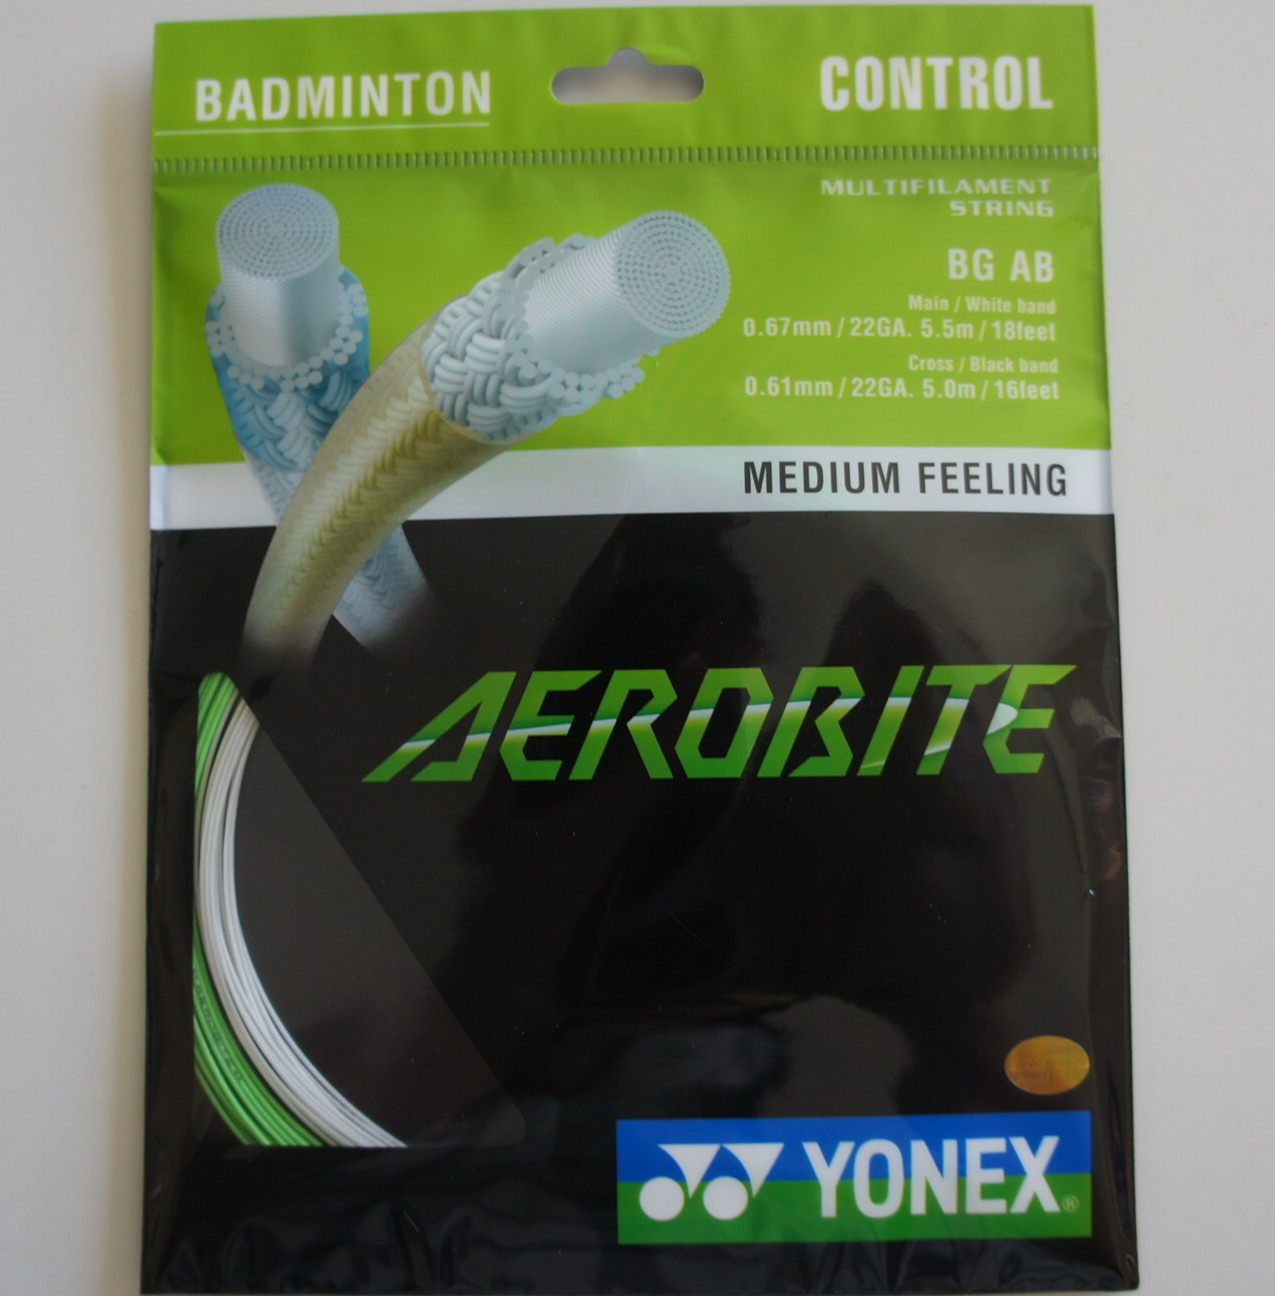 YONEX BG AB Aerobite Badminton String (10 Packs), Green/White